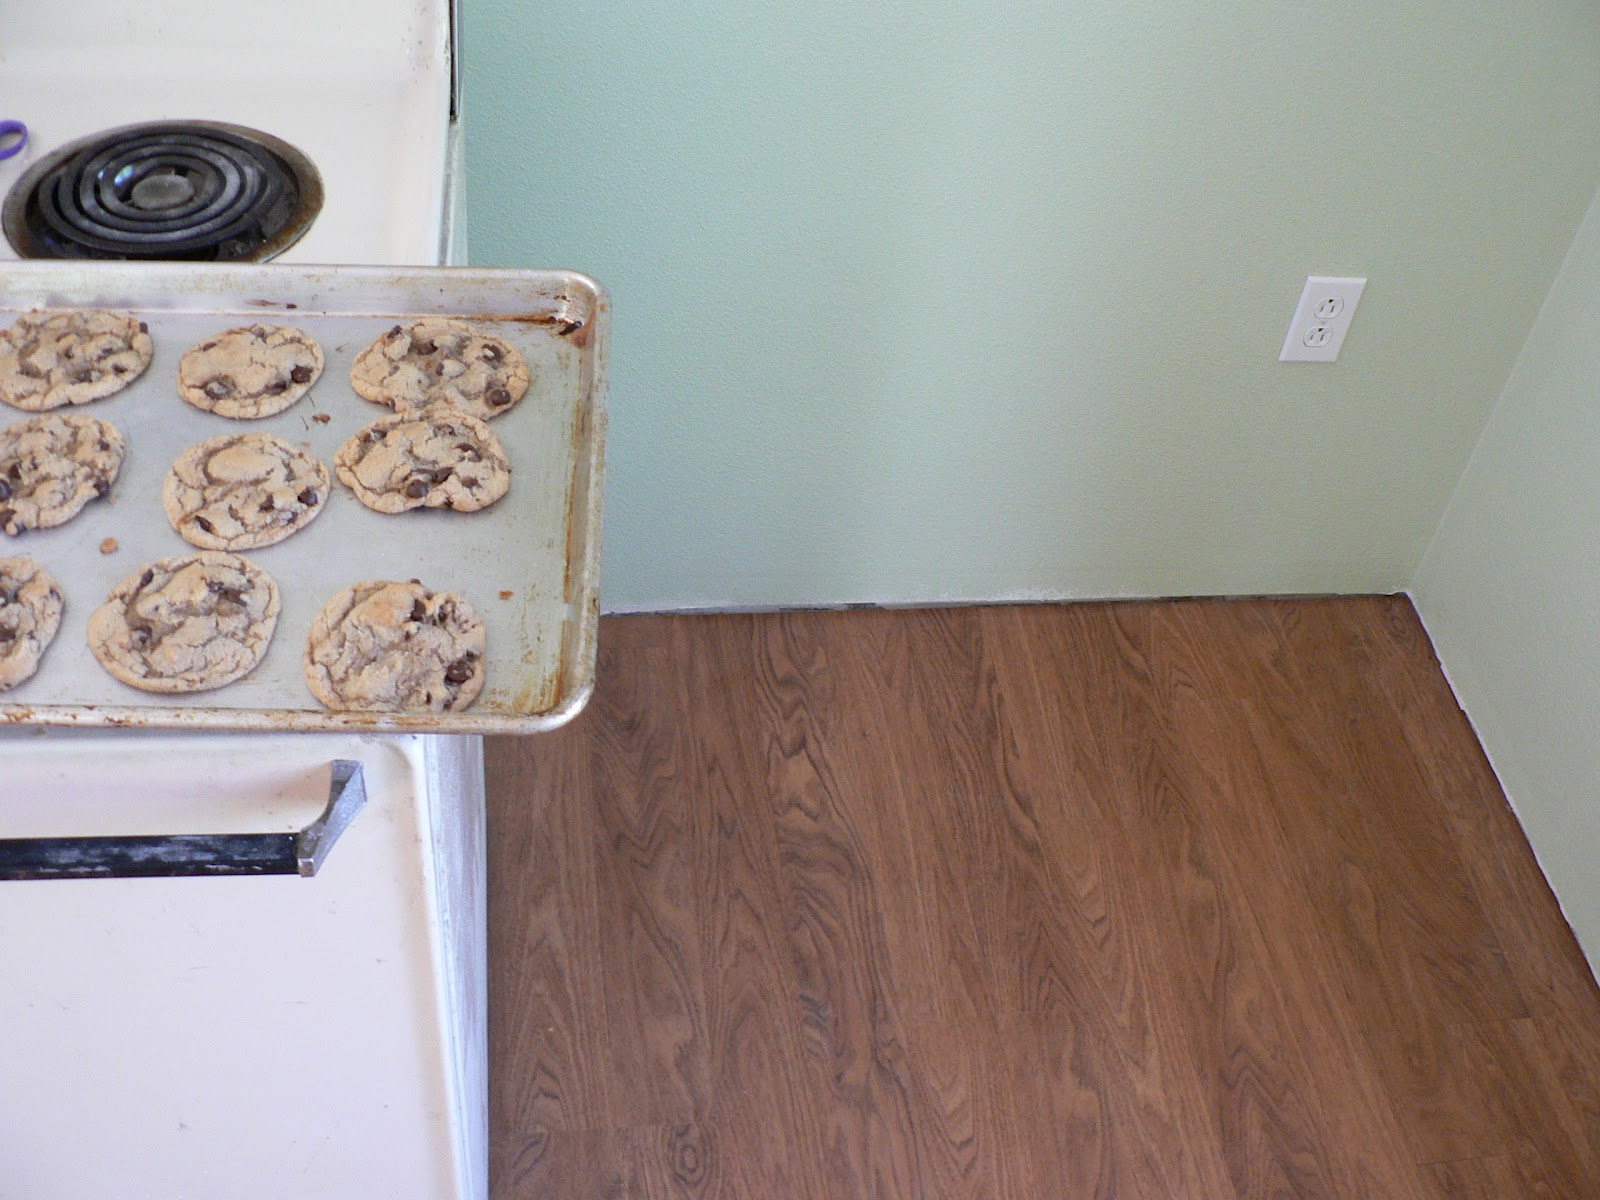 Our Biggest Mess: Kitchen Floor (and a trip to the ER) - Bless This Mess